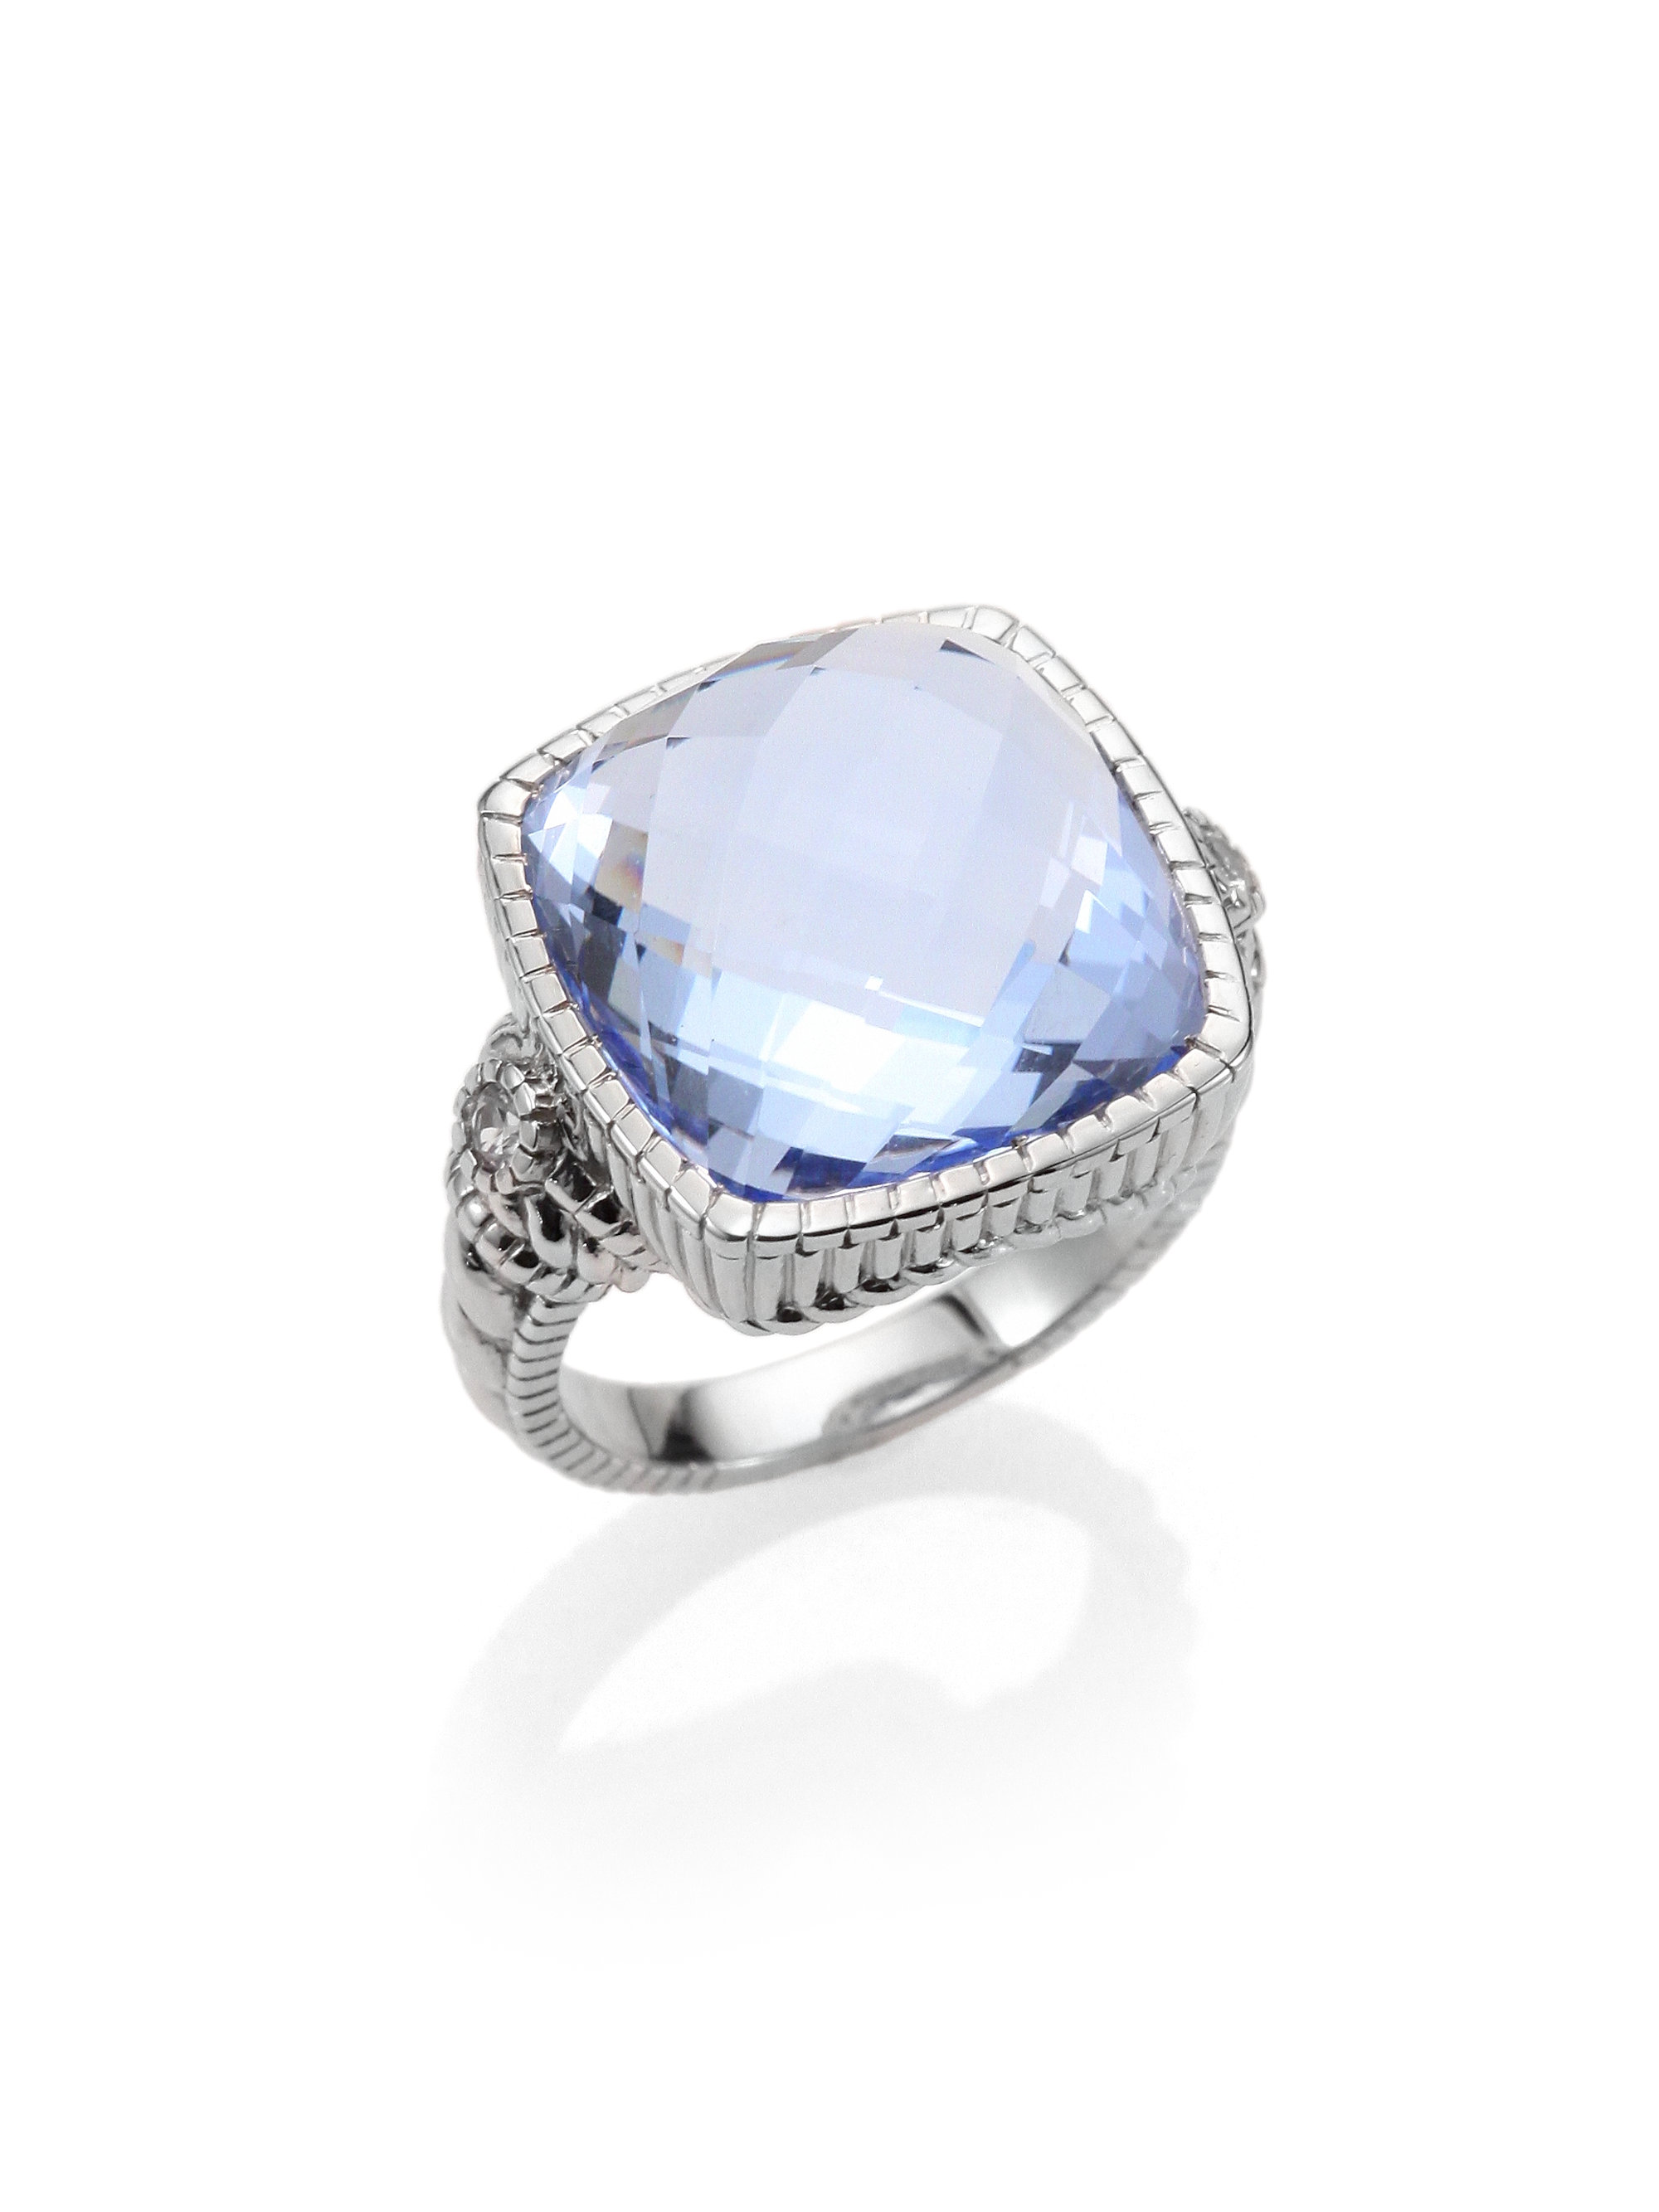 carat d pictures show it this a my sapphire e s ering me t and pretty solitaire ring white isn super topic is img